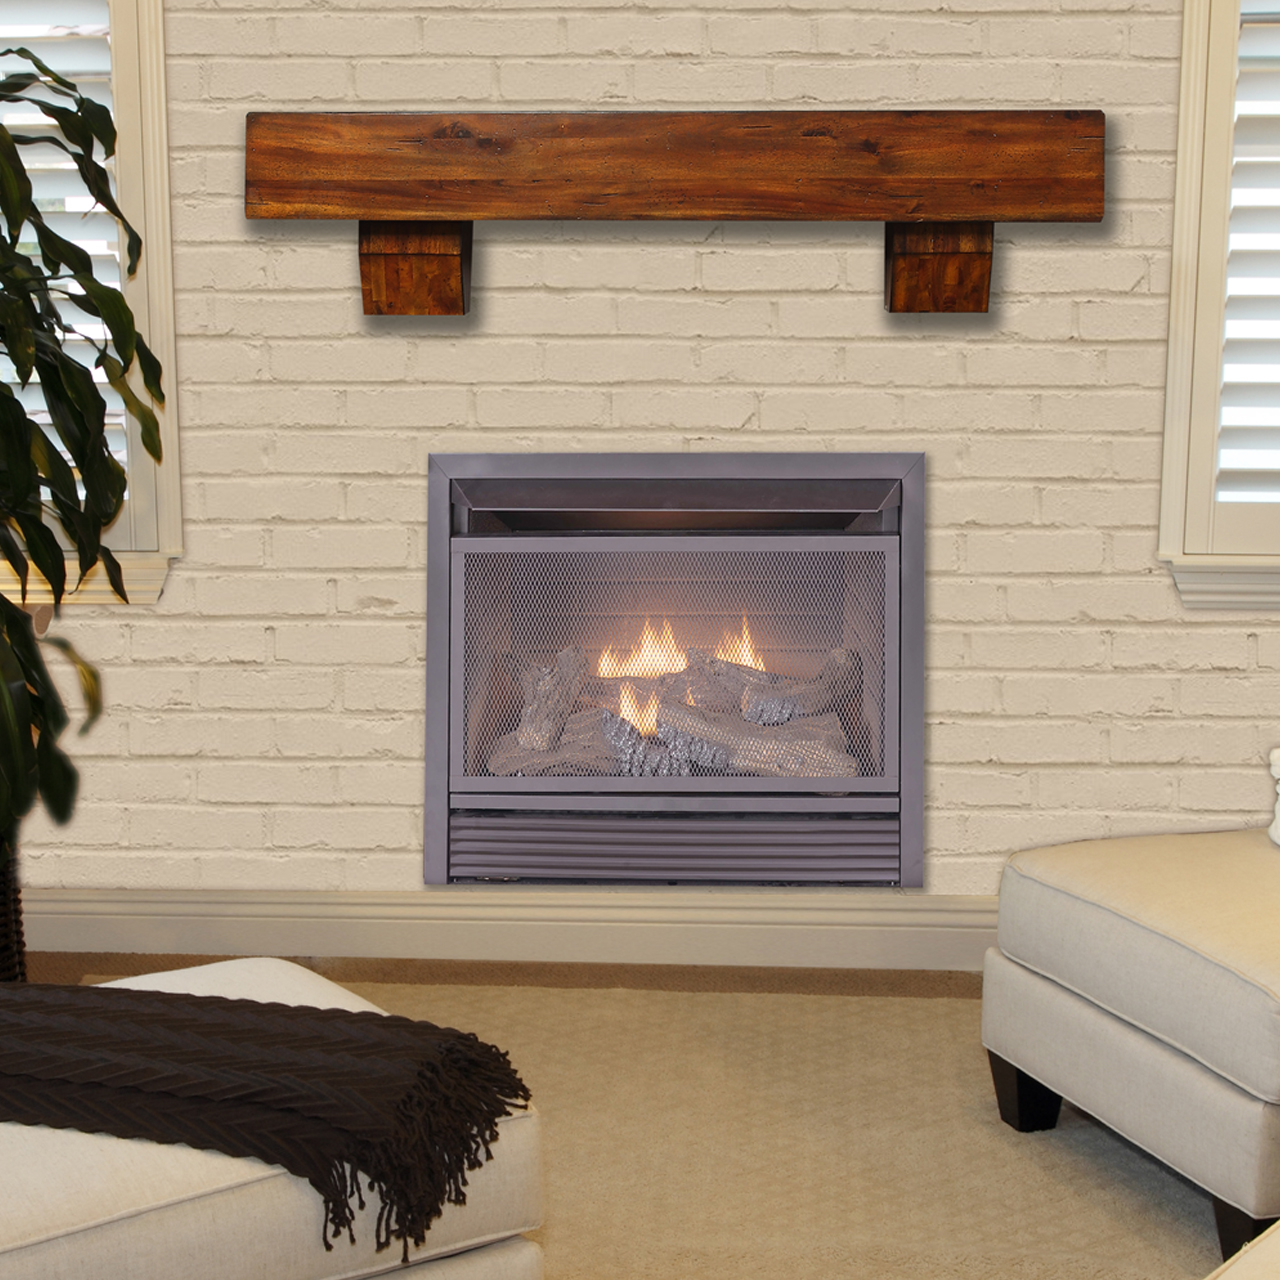 duluth forge dual fuel ventless fireplace insert 26 000 btu